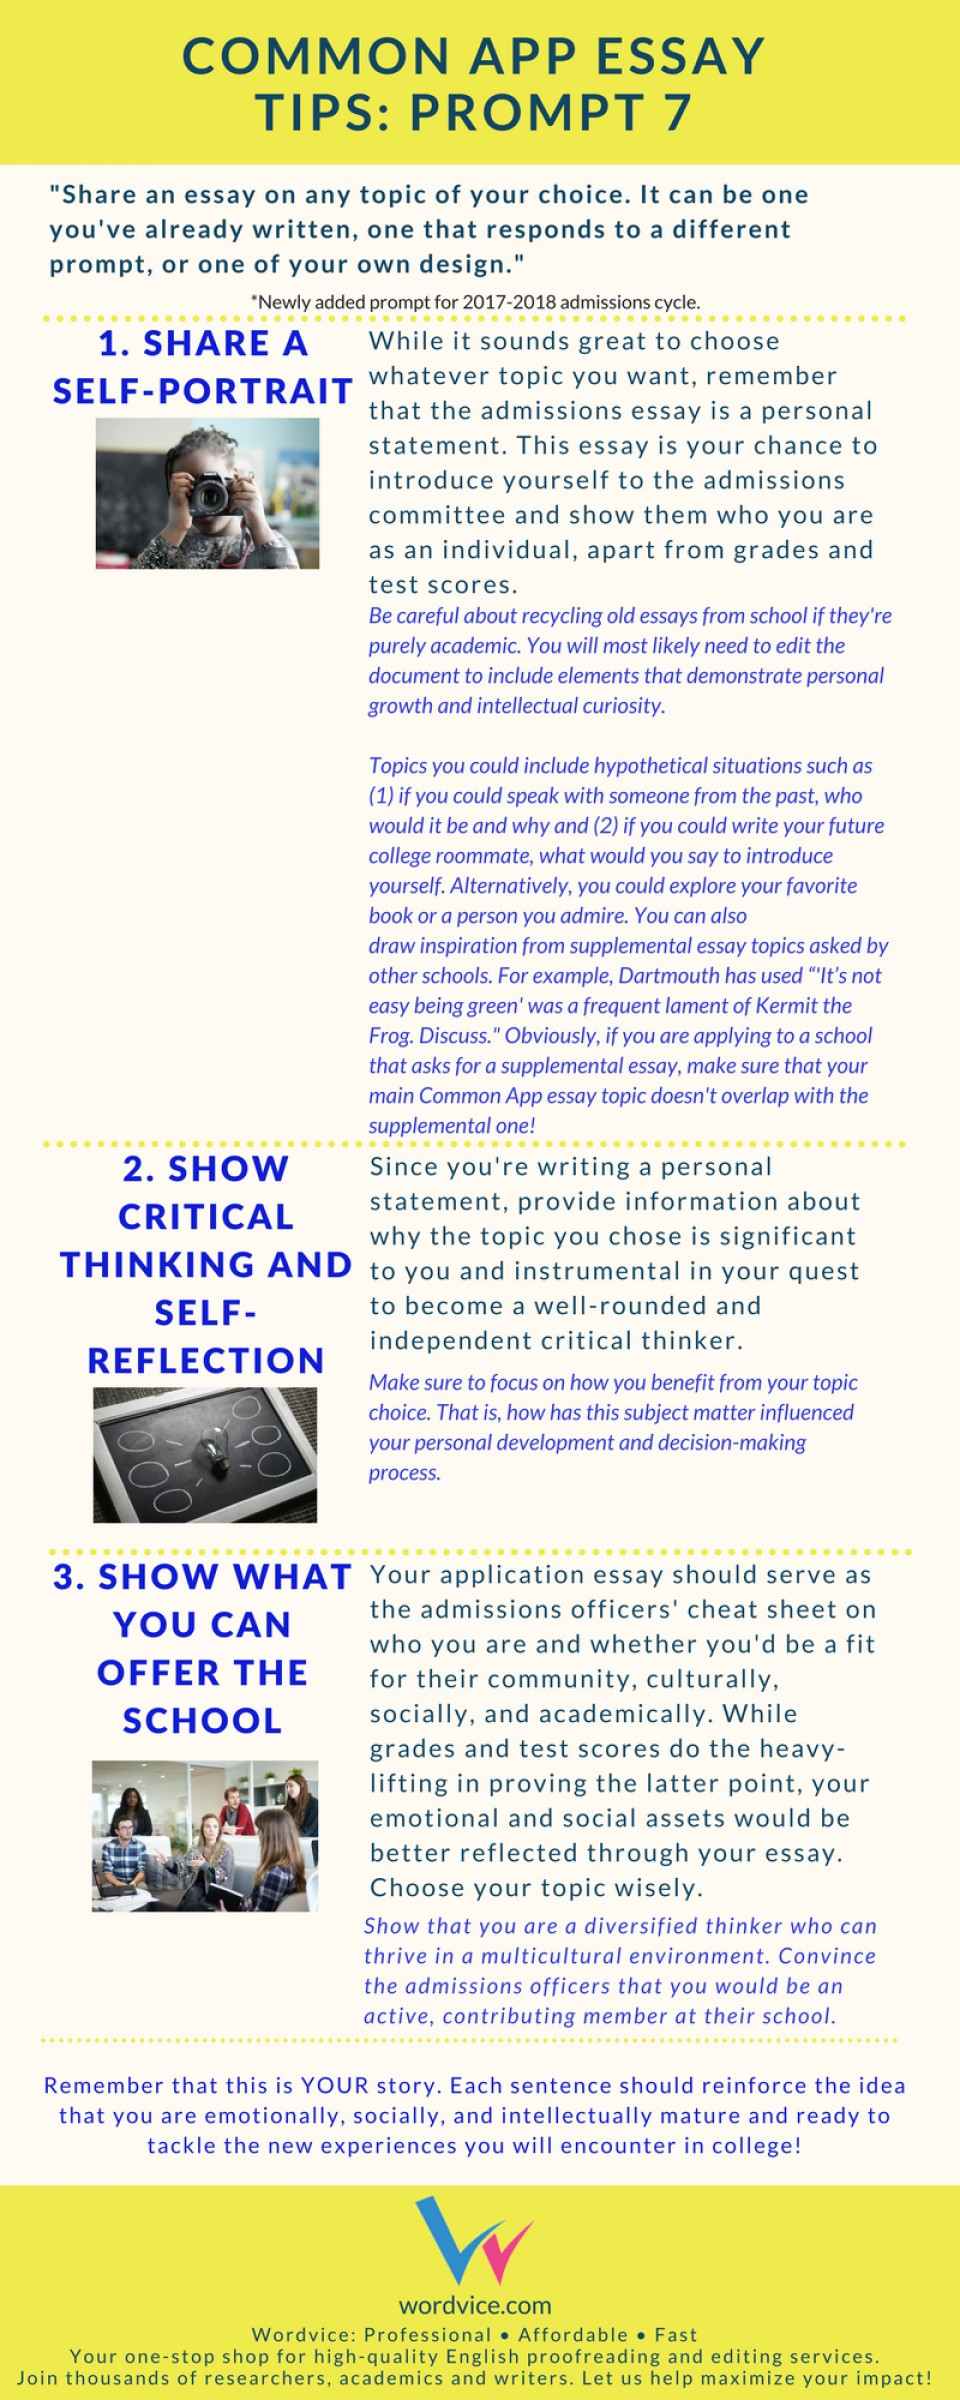 010 Common Application Essay Prompts Example App Brainstormprompt Best 2017 Examples 2017-18 A Guide 960